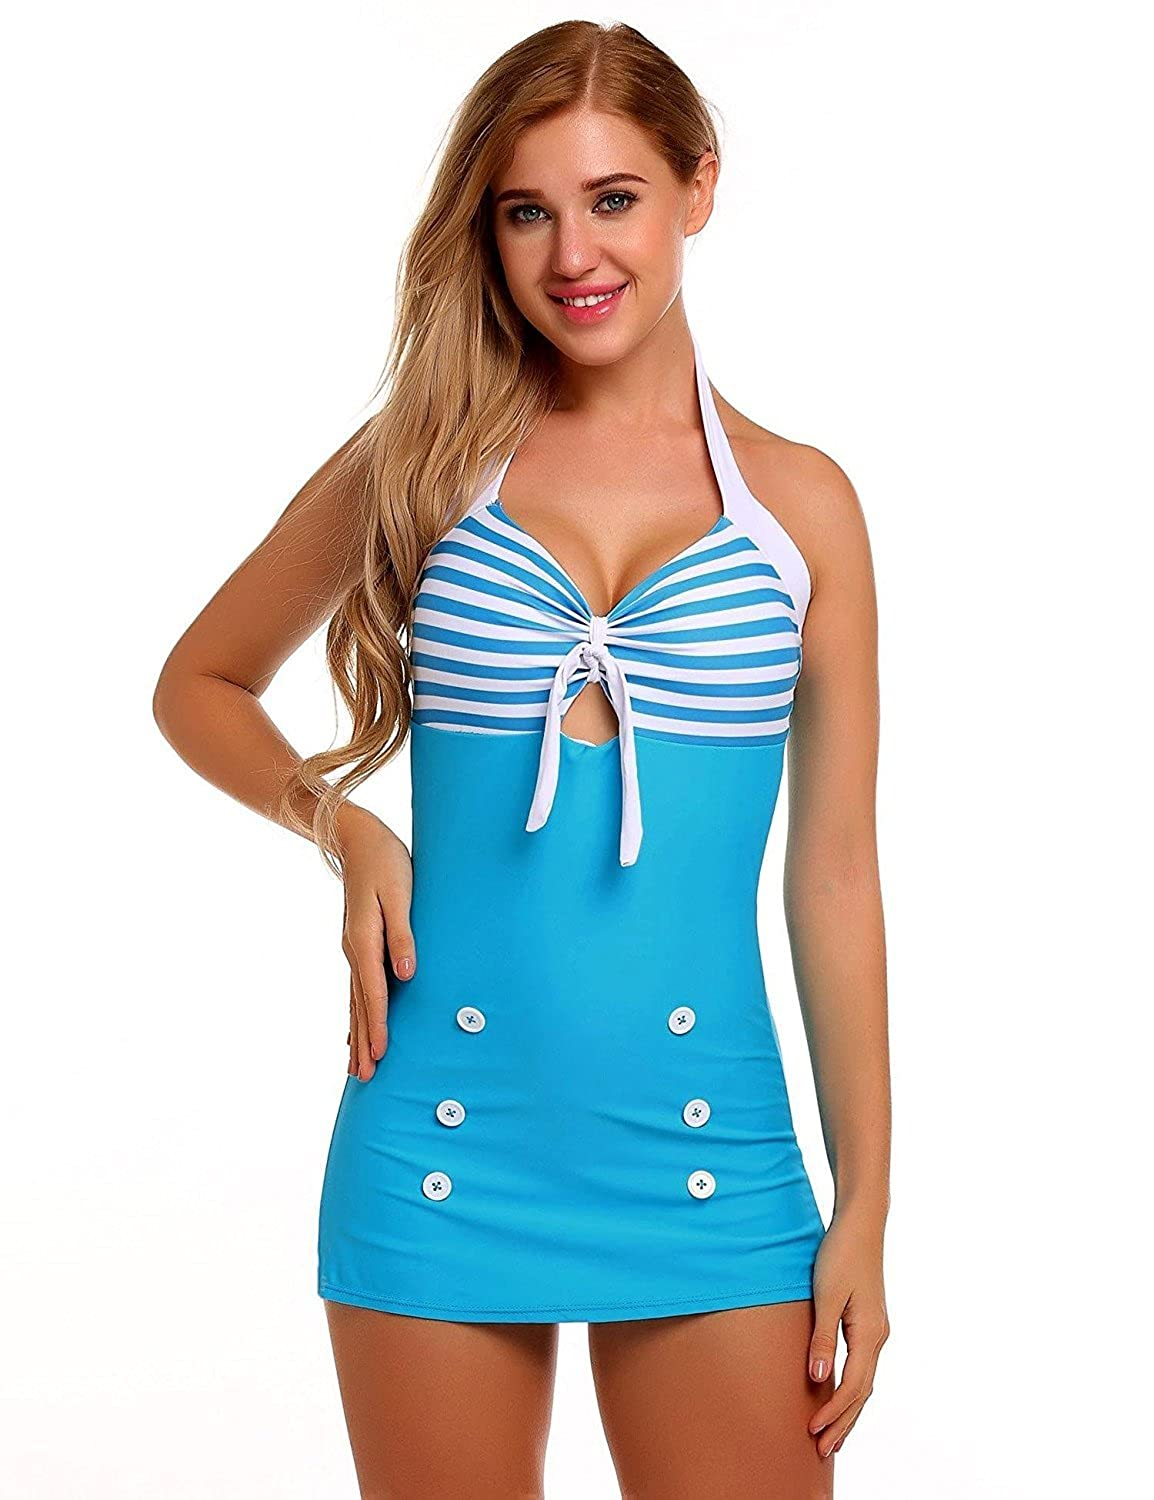 Cooshional Womens Vintage Retro 50s One-Piece Halter Neck Swimming Costume Swimsuit